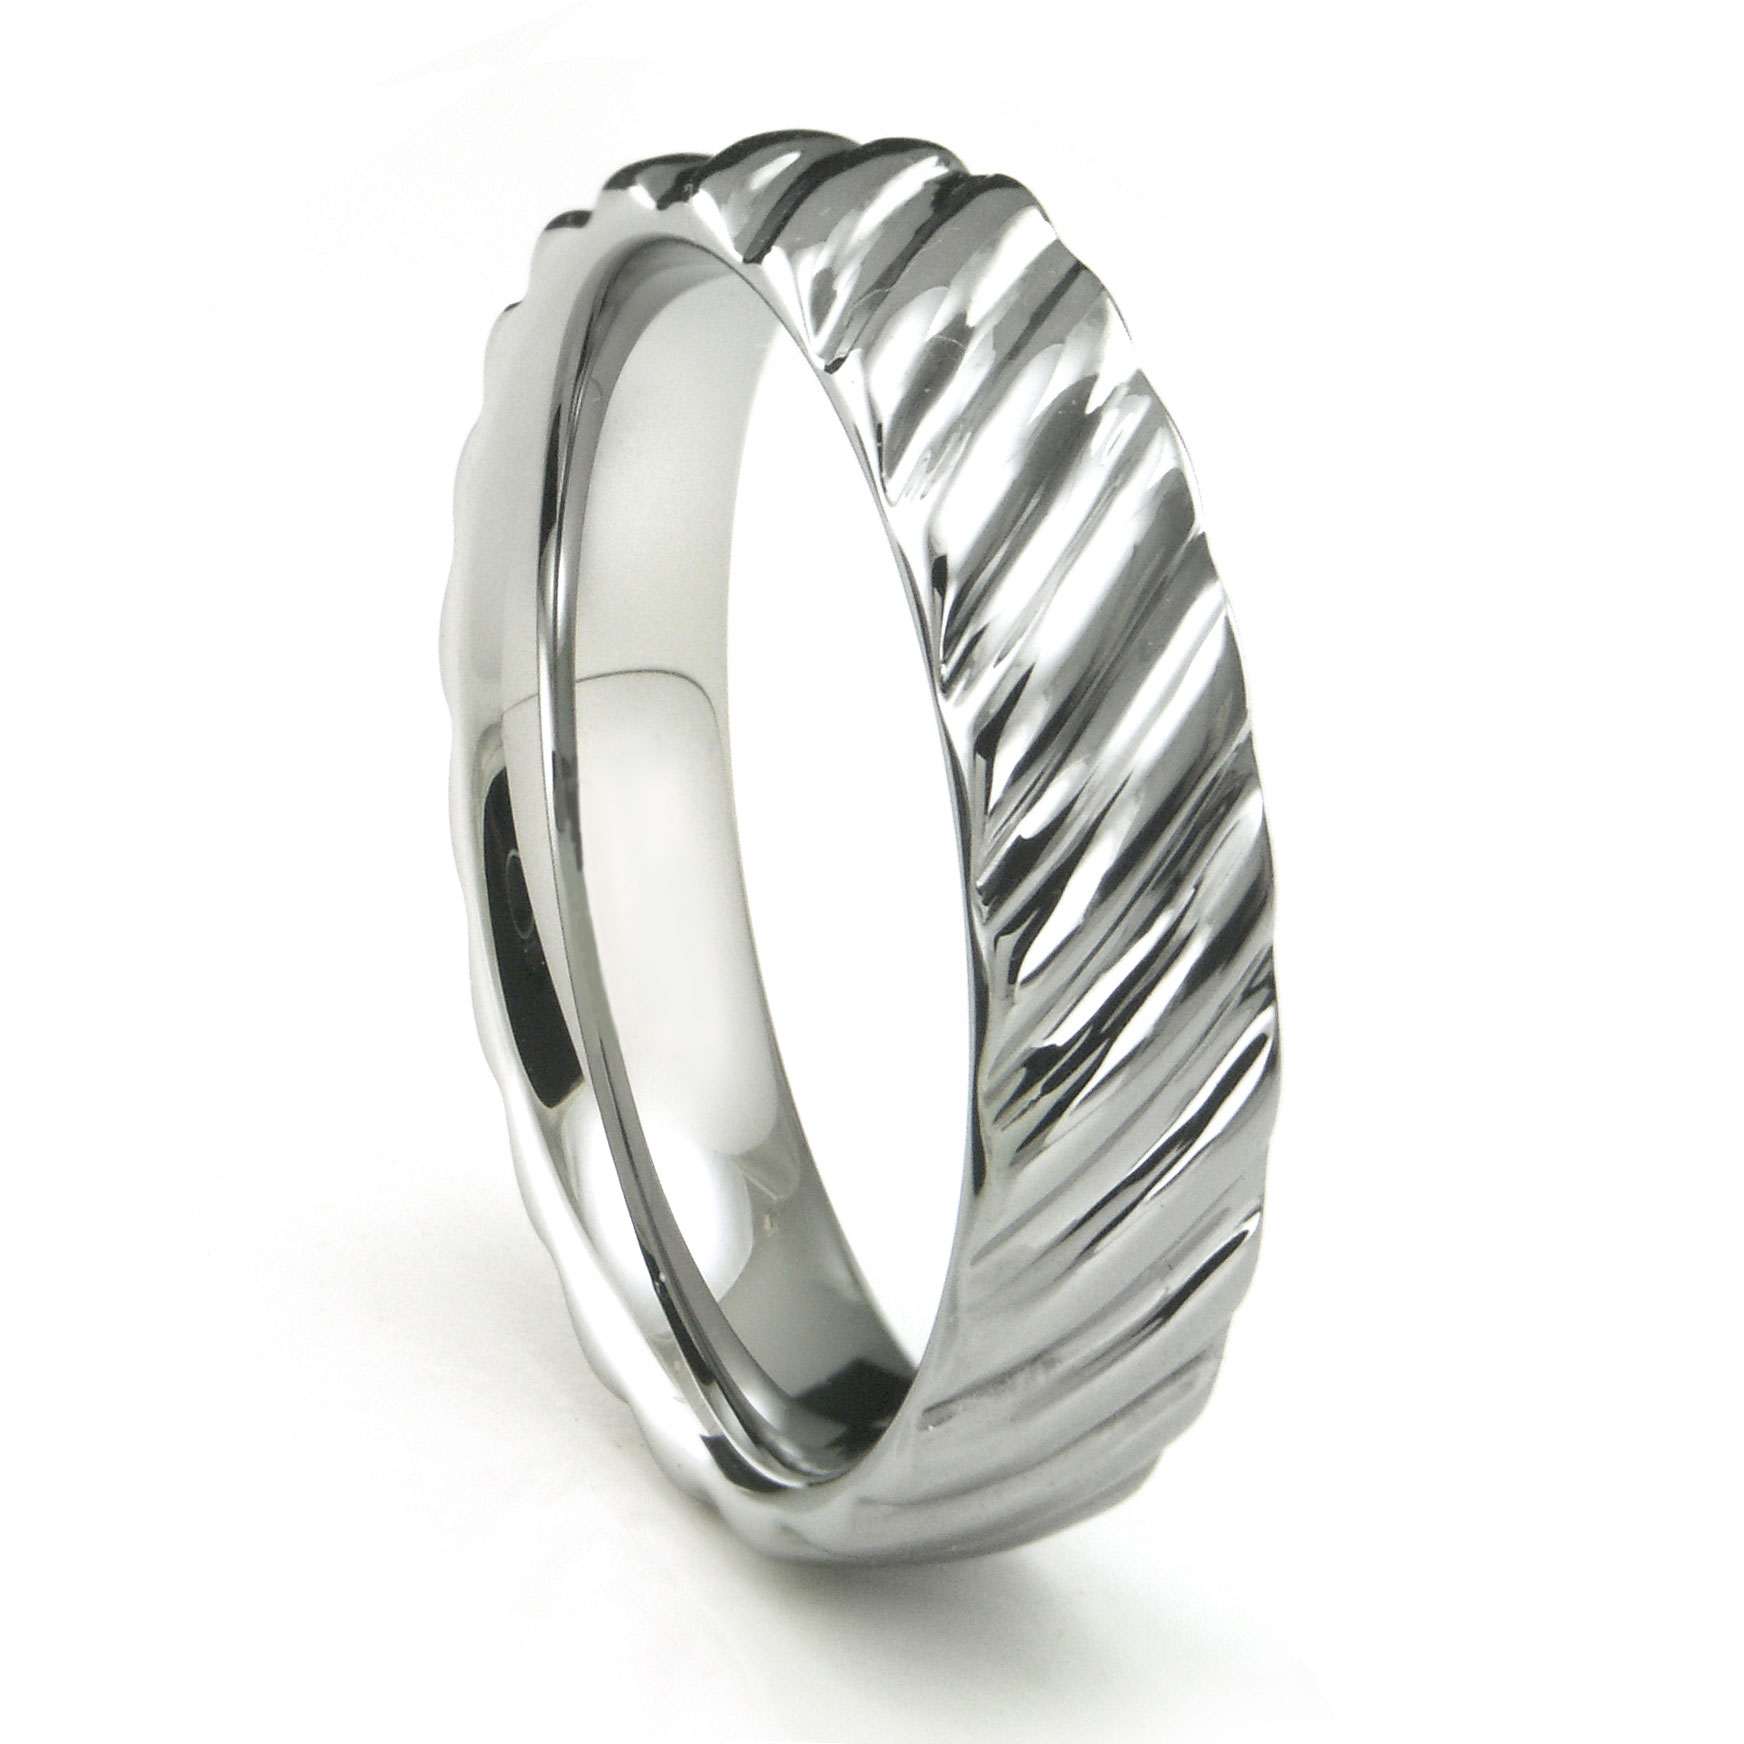 by the bands for is band thing original trending desktop ring wedding size men now download handphone designs most tablet